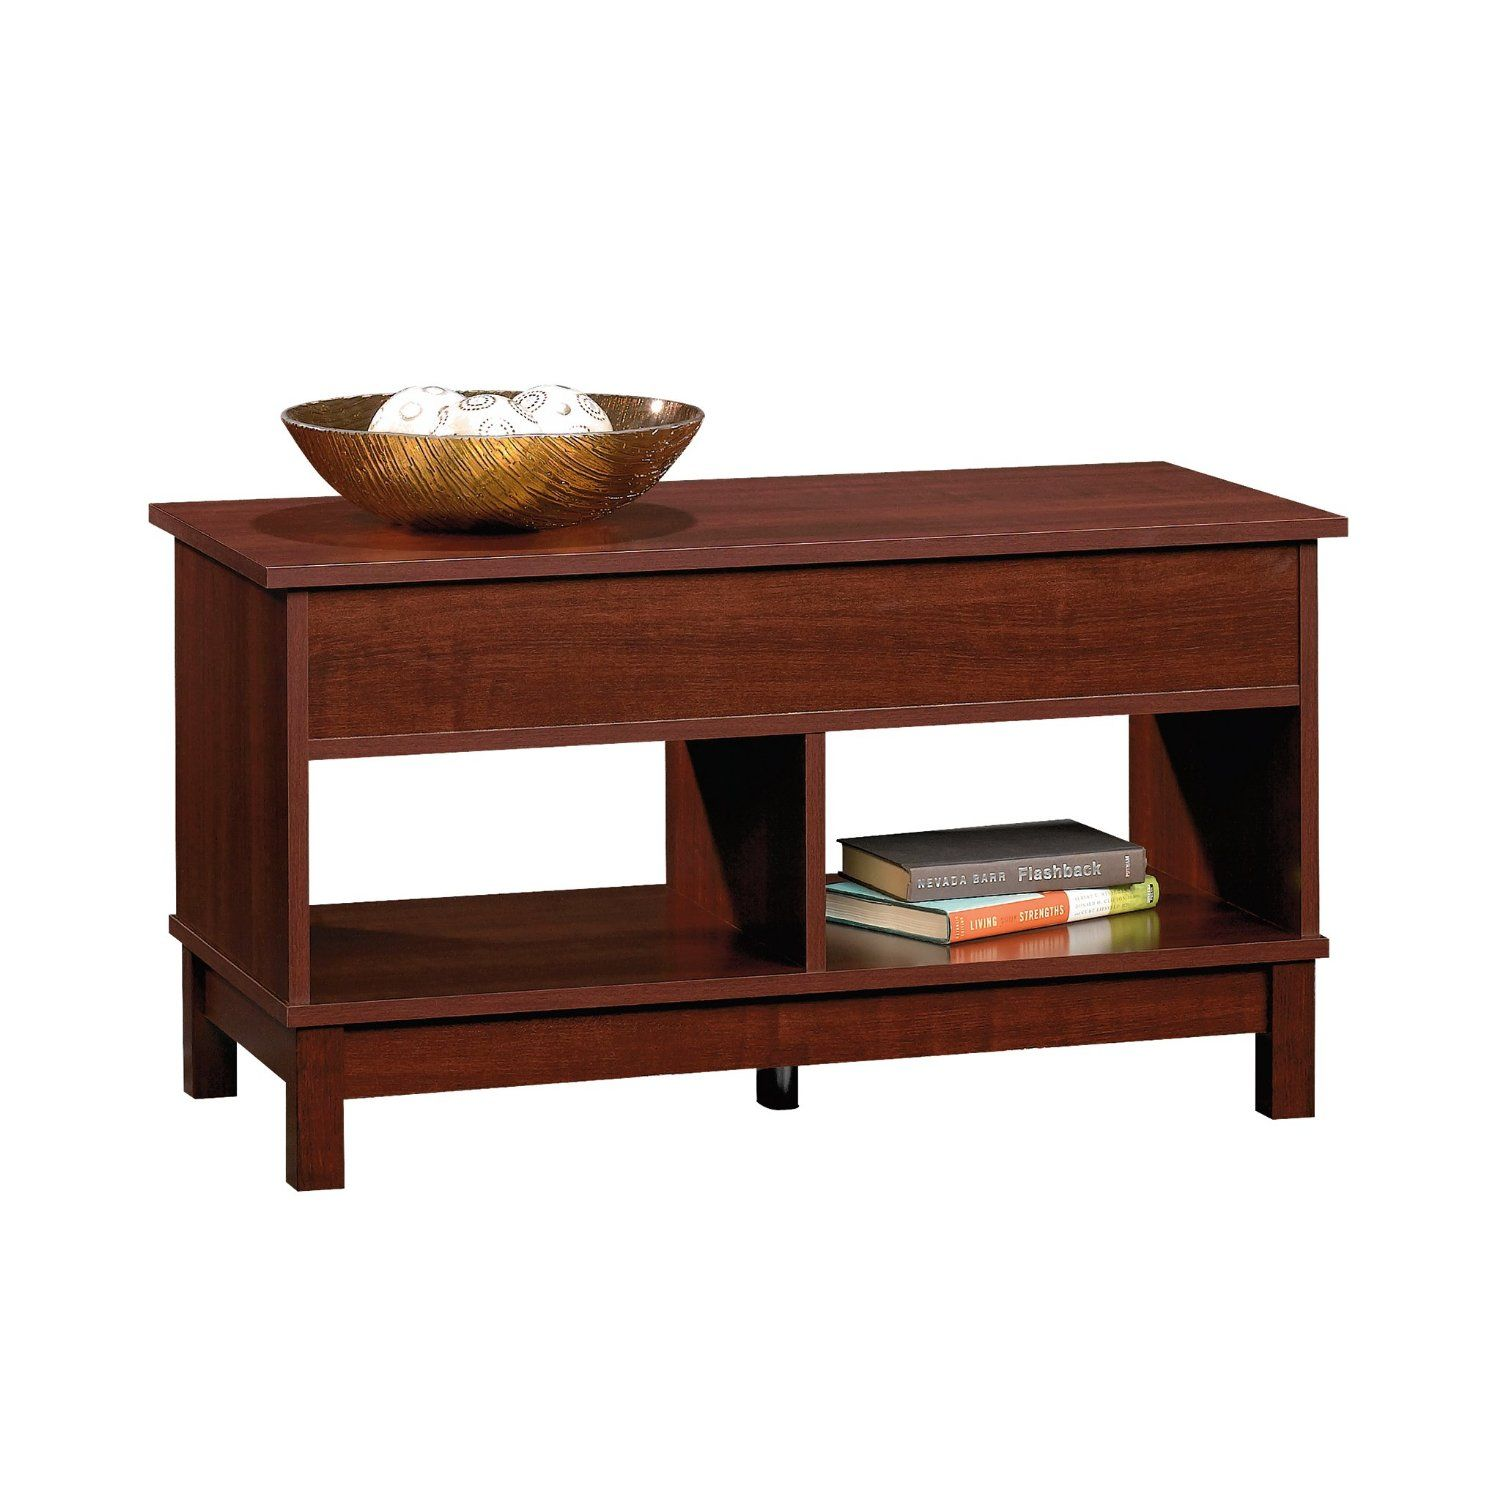 Amazoncom Sauder Kendall Square Lift Top Coffee Table Select - Kendall coffee table